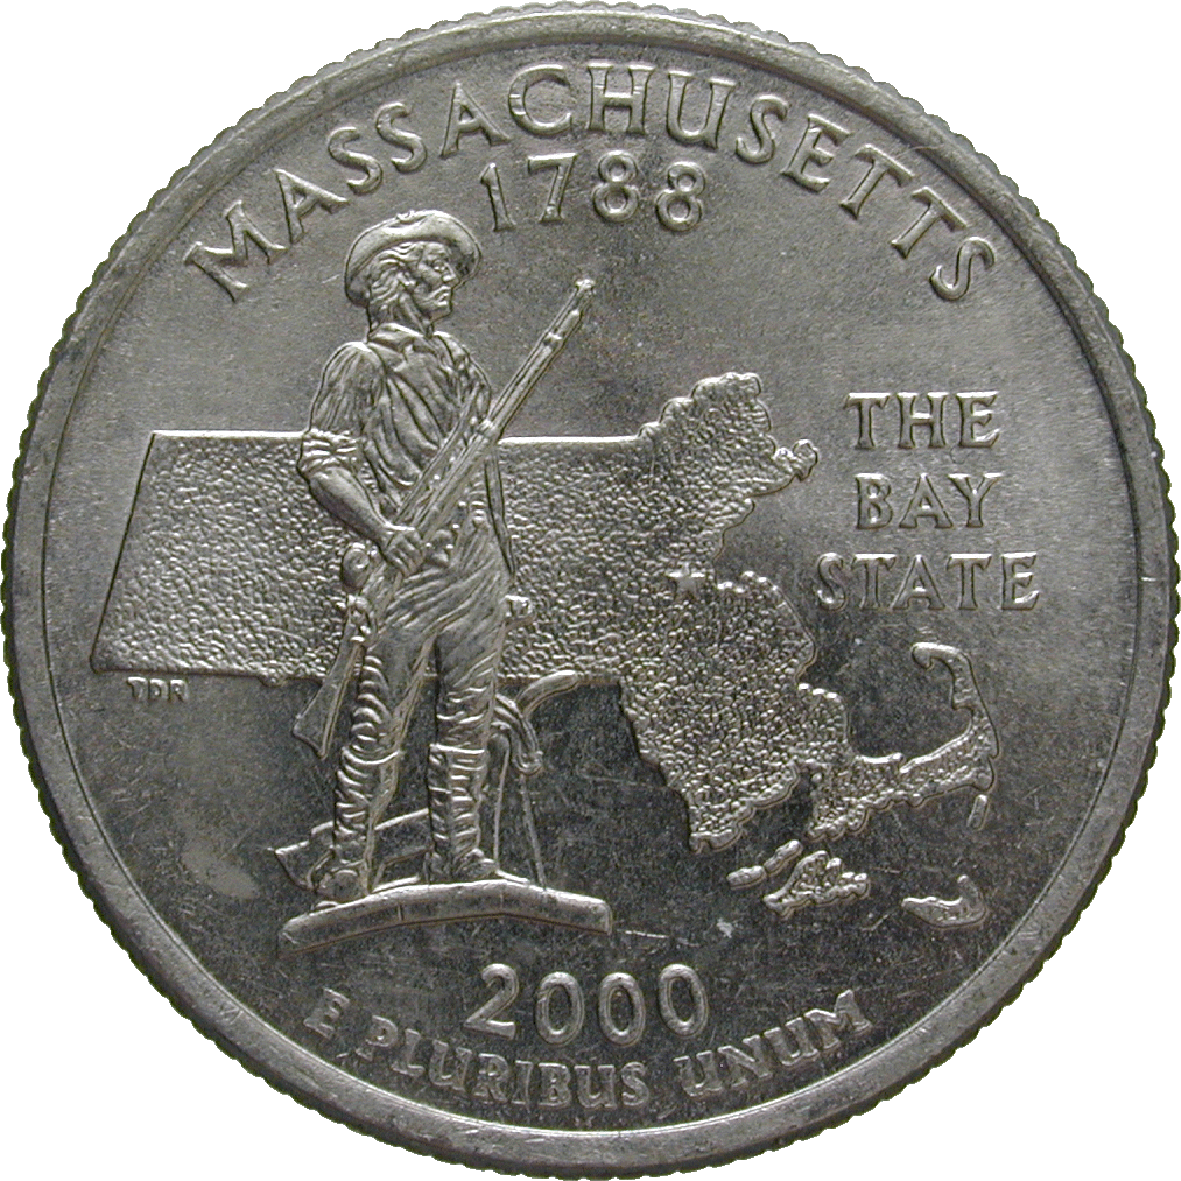 United States of America, Quarter Dollar 2000 (reverse)